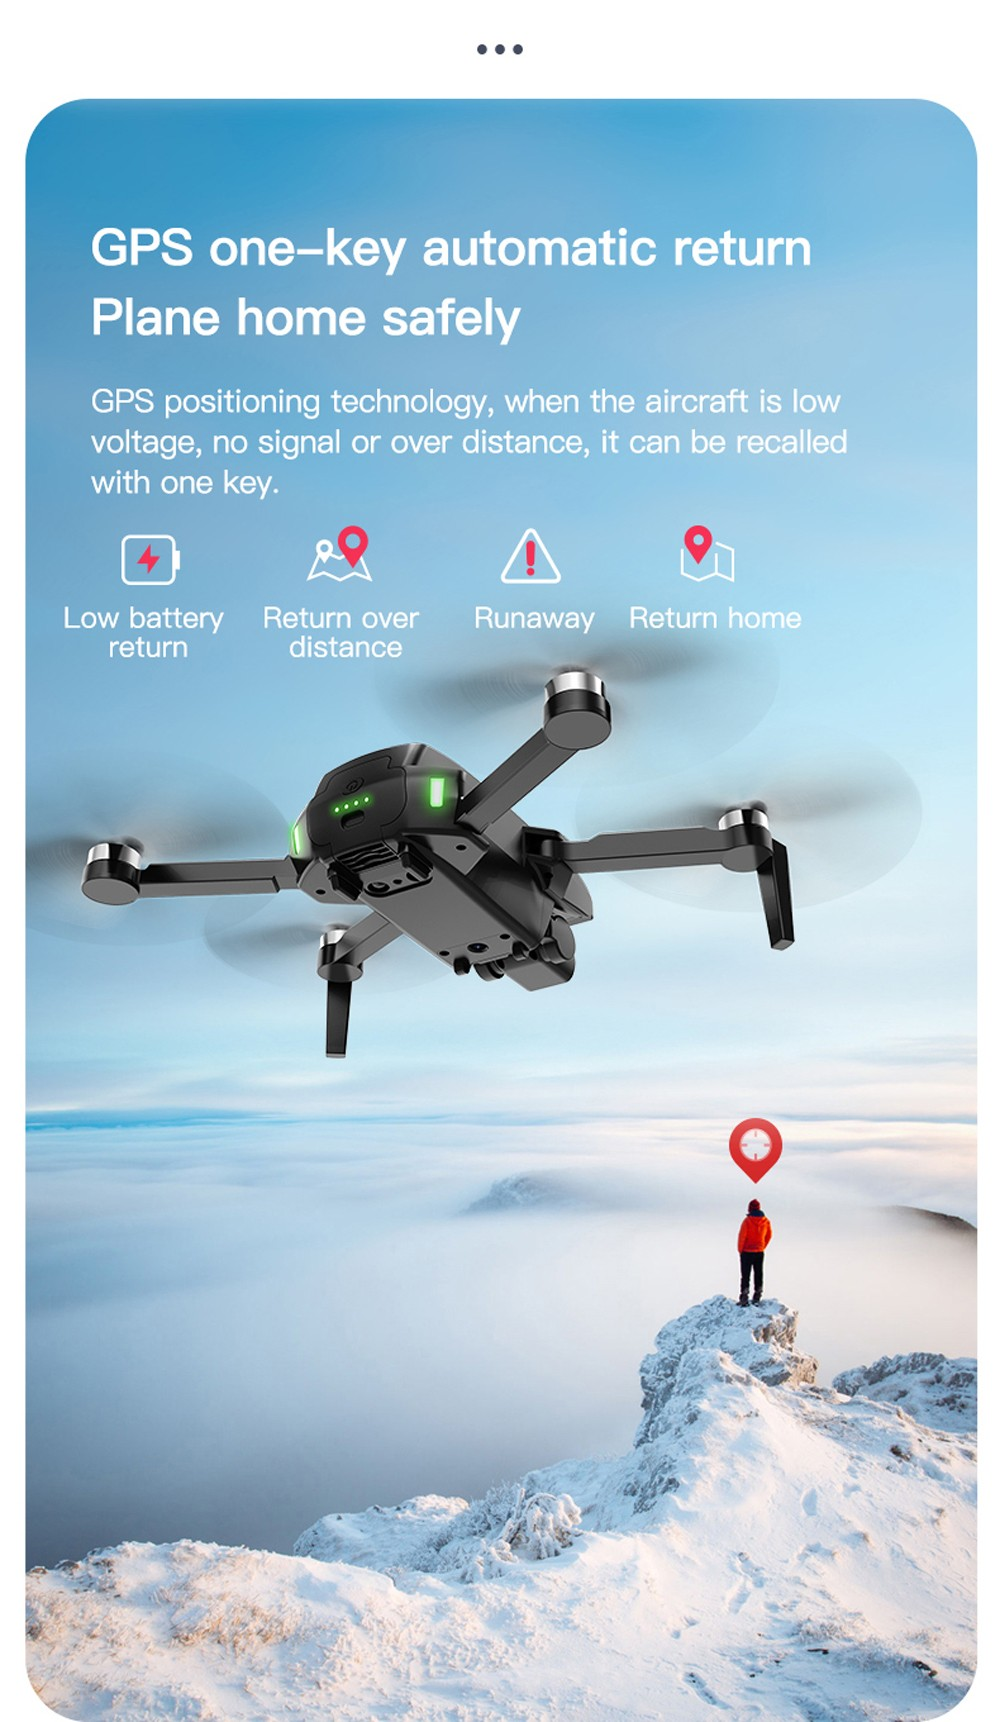 S3 Brushless Gps Aerial Drones HD 4k Folded Dual Camera Remote Control Aircraft - 5g Black 4K Admission Package Version